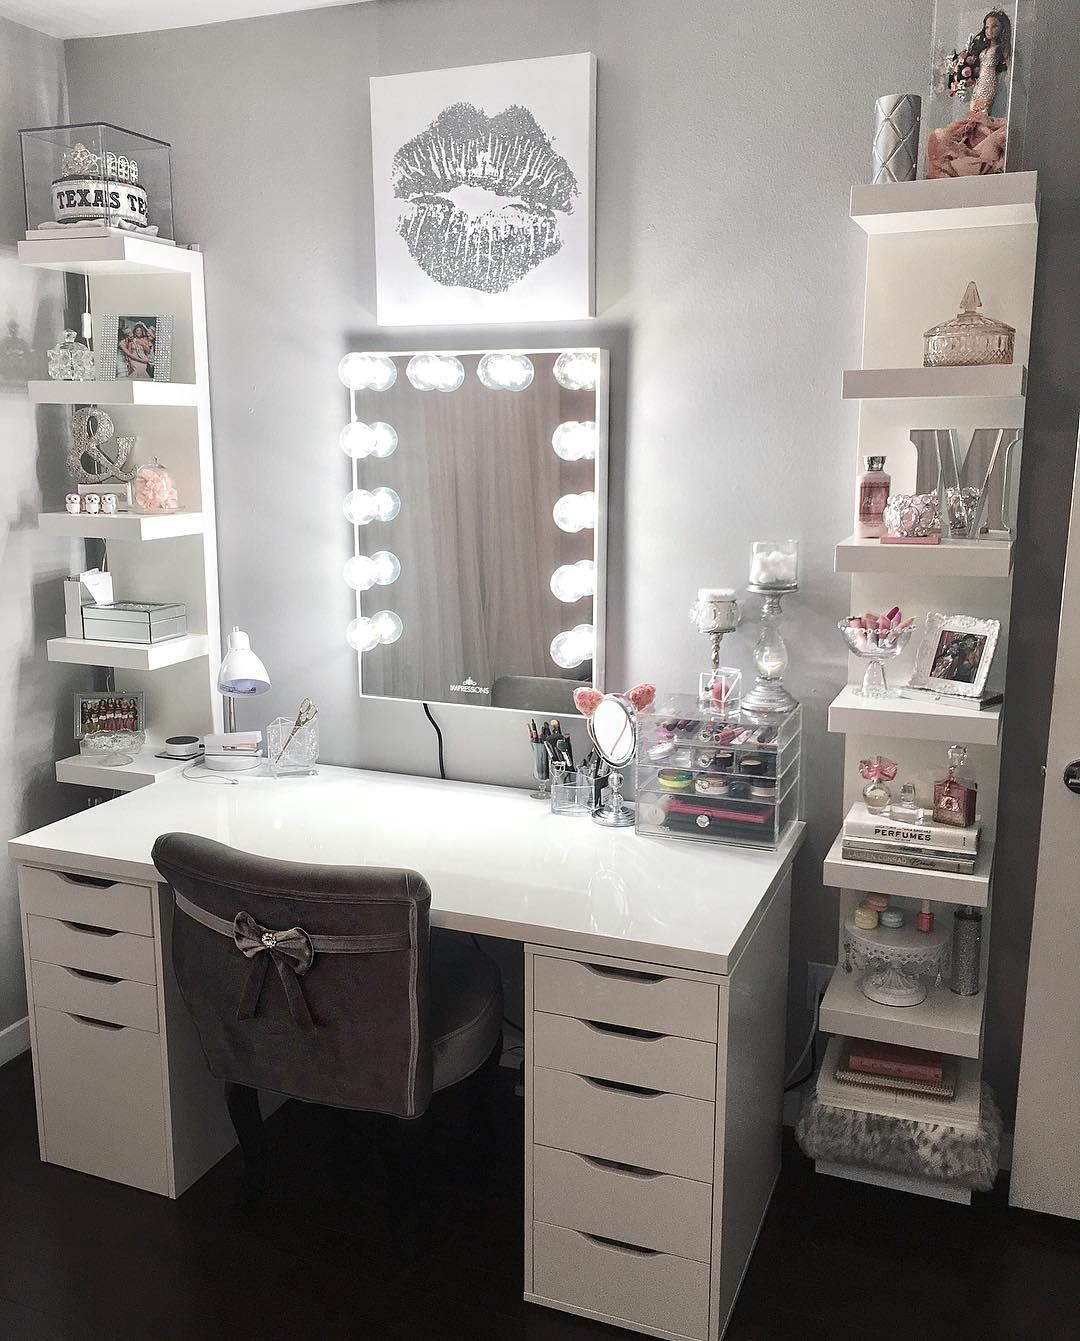 7 197 Likes 276 Comments Impressions Vanity Co